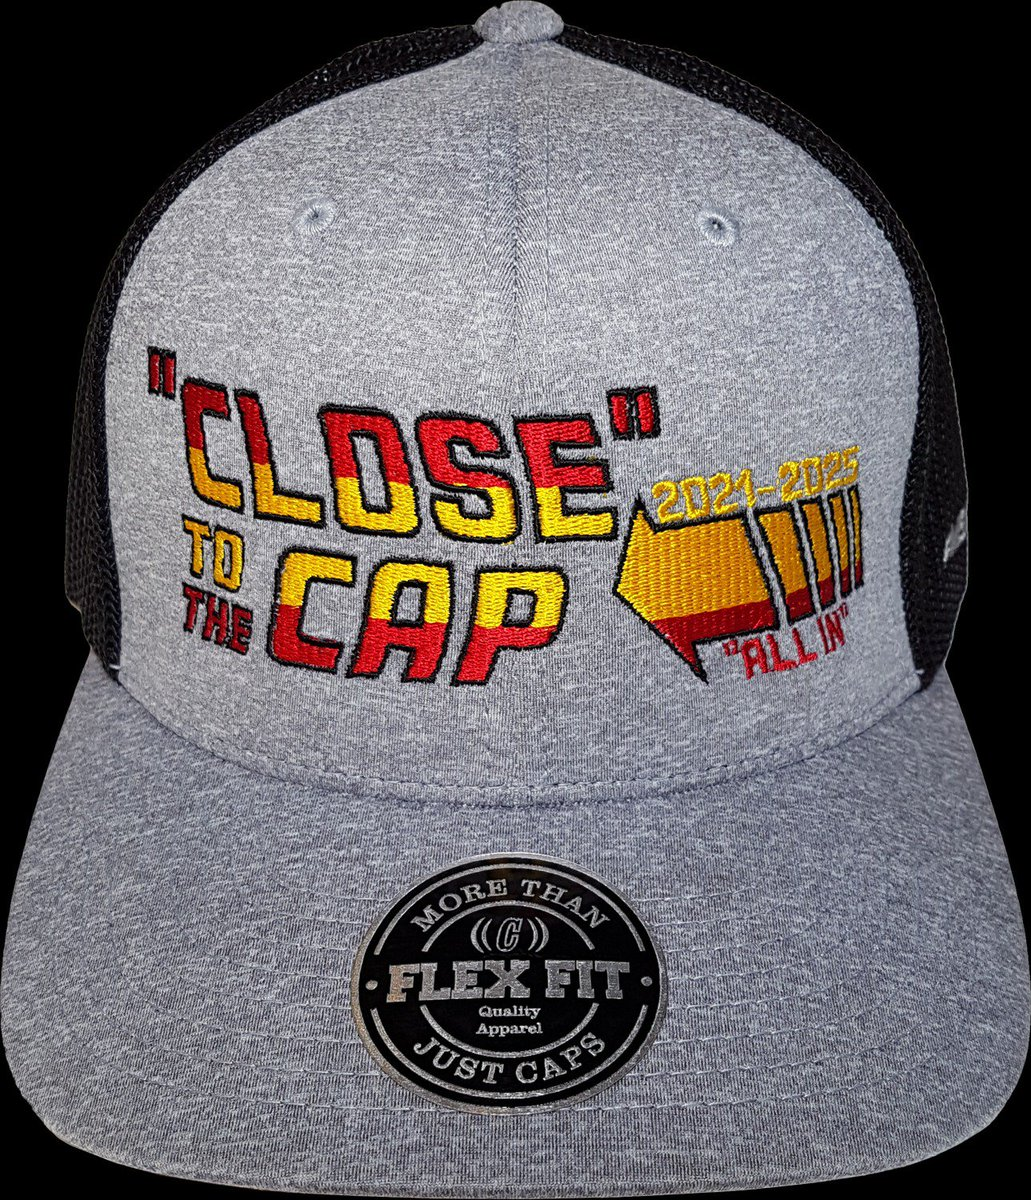 f5614a03e0b ... a cap collection that commemorates and will remind us in the future of  this promise. We themed it around Back To The Future.